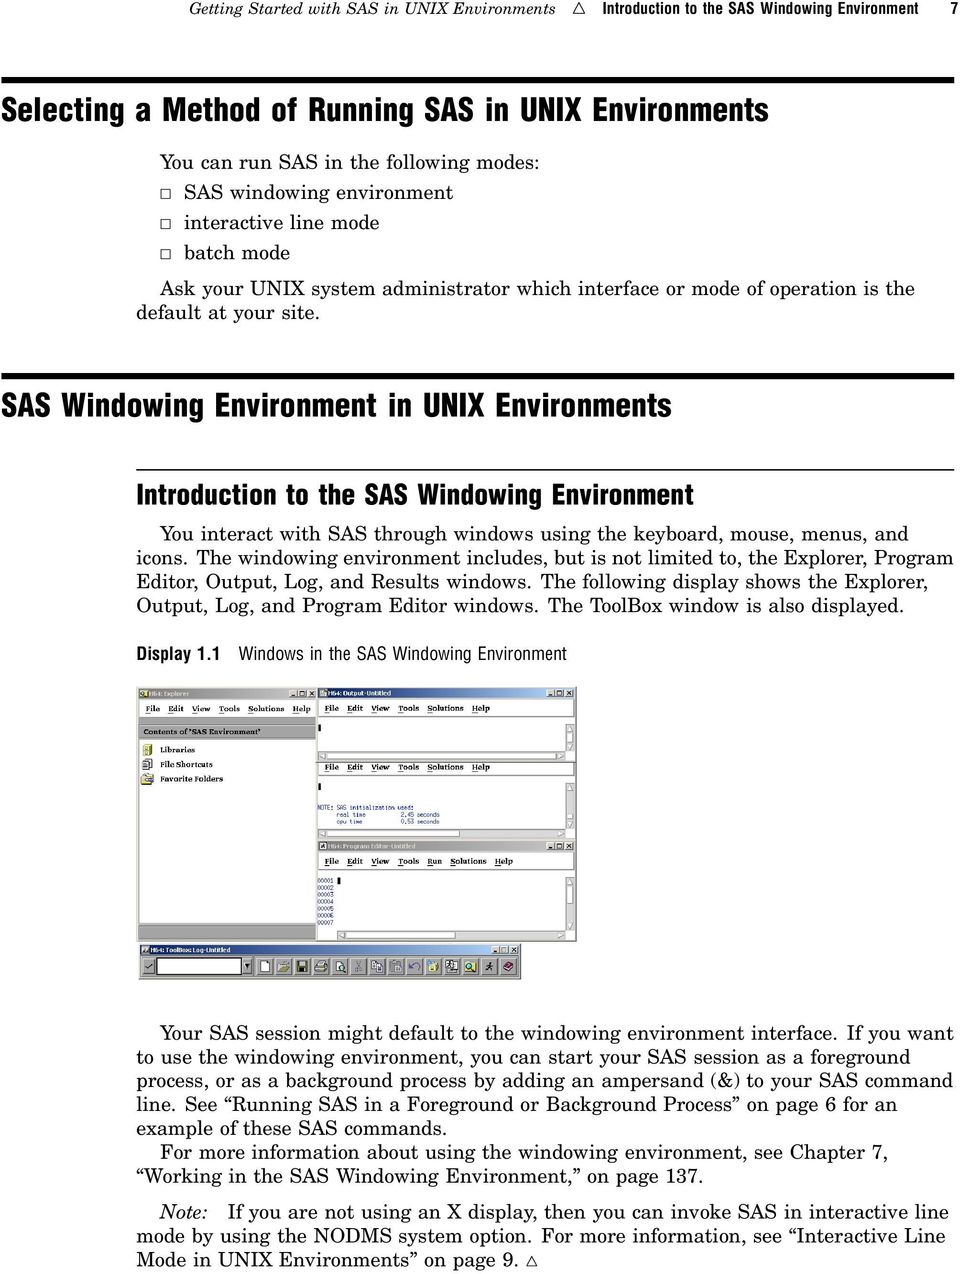 CHAPTER 1 Getting Started with SAS in UNIX Environments - PDF